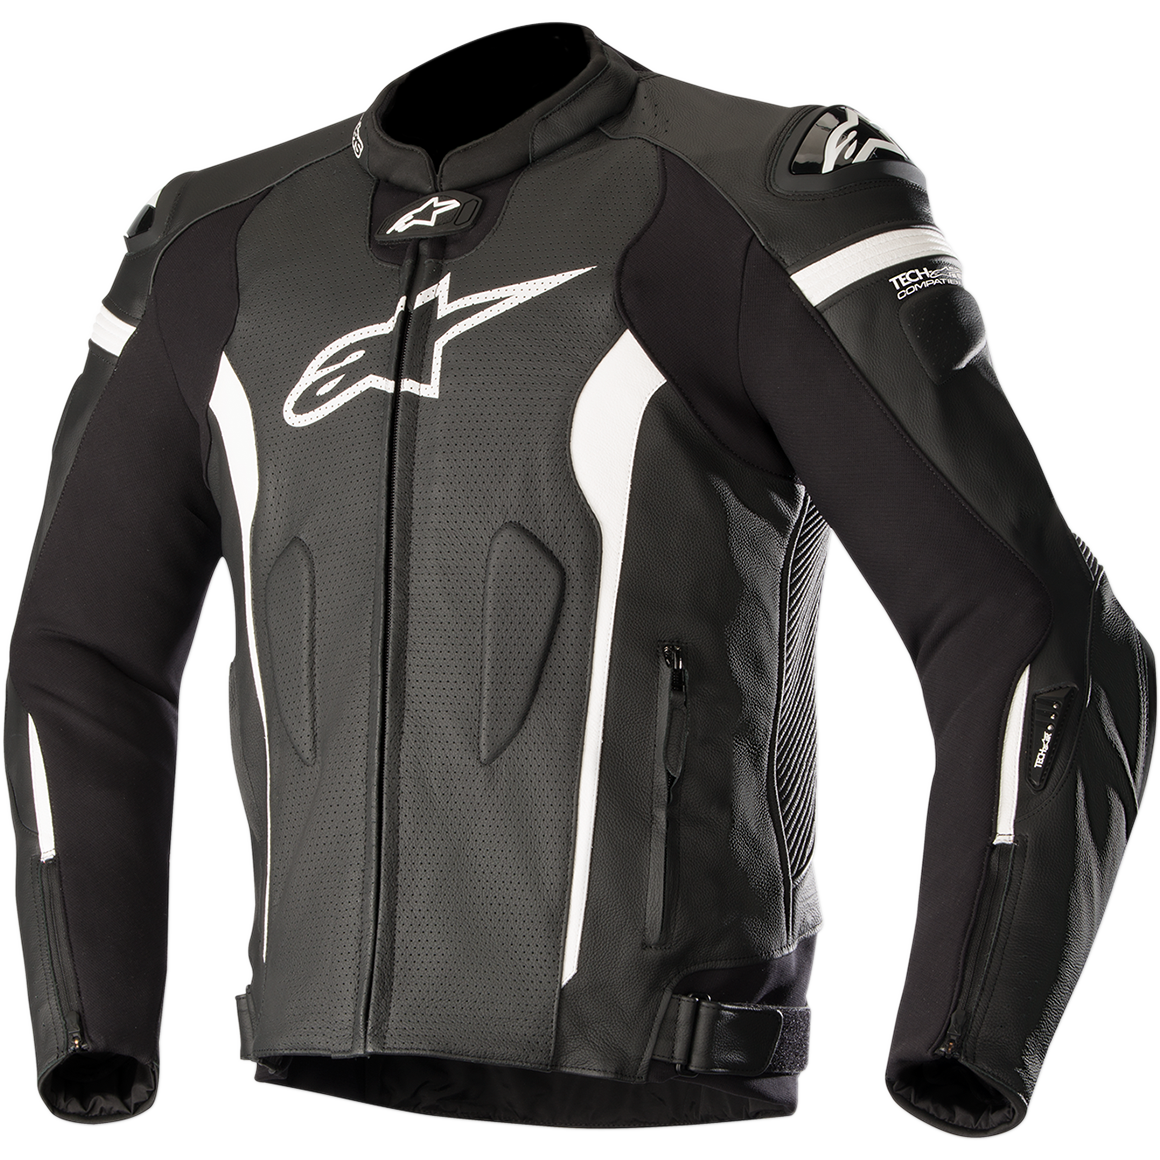 Missile Leather Jacket Tech-Air<sup>&reg;</sup> Compatible